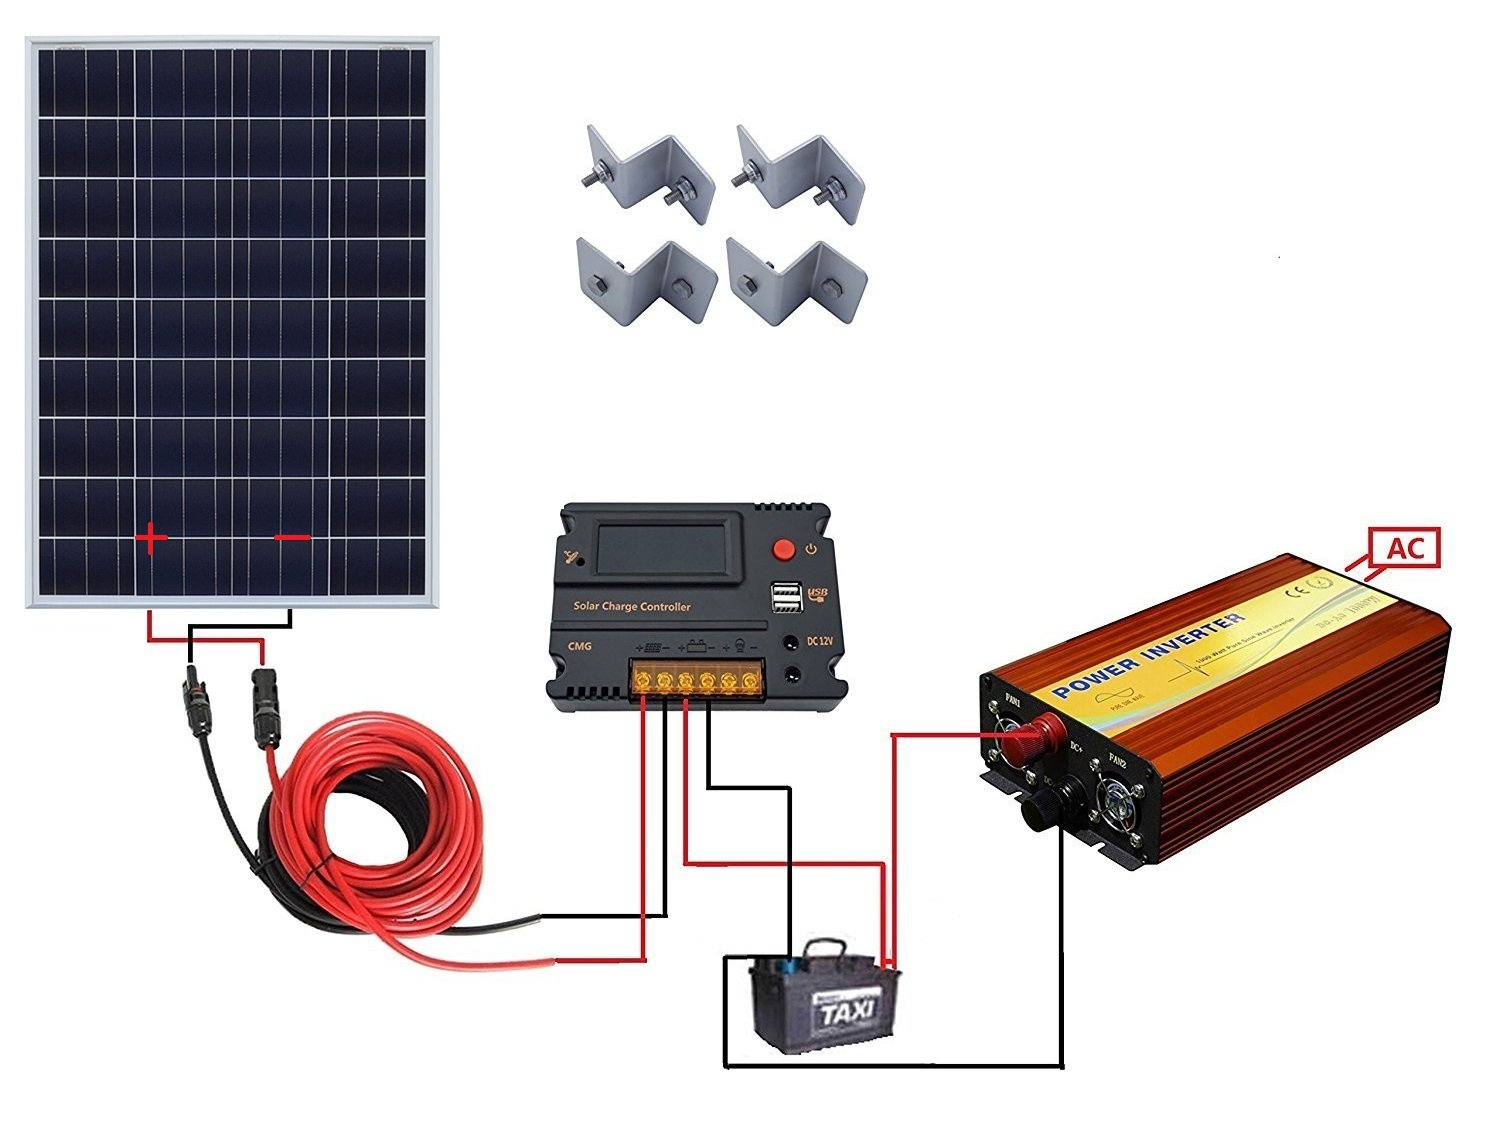 Eco Worthy 100 Watt 12v Solar Panels Kit 20a Charge How Power Works Diagram Does Work Controller 1000w Inverter For Off Grid 12 Volt Battery System Garden Outdoor